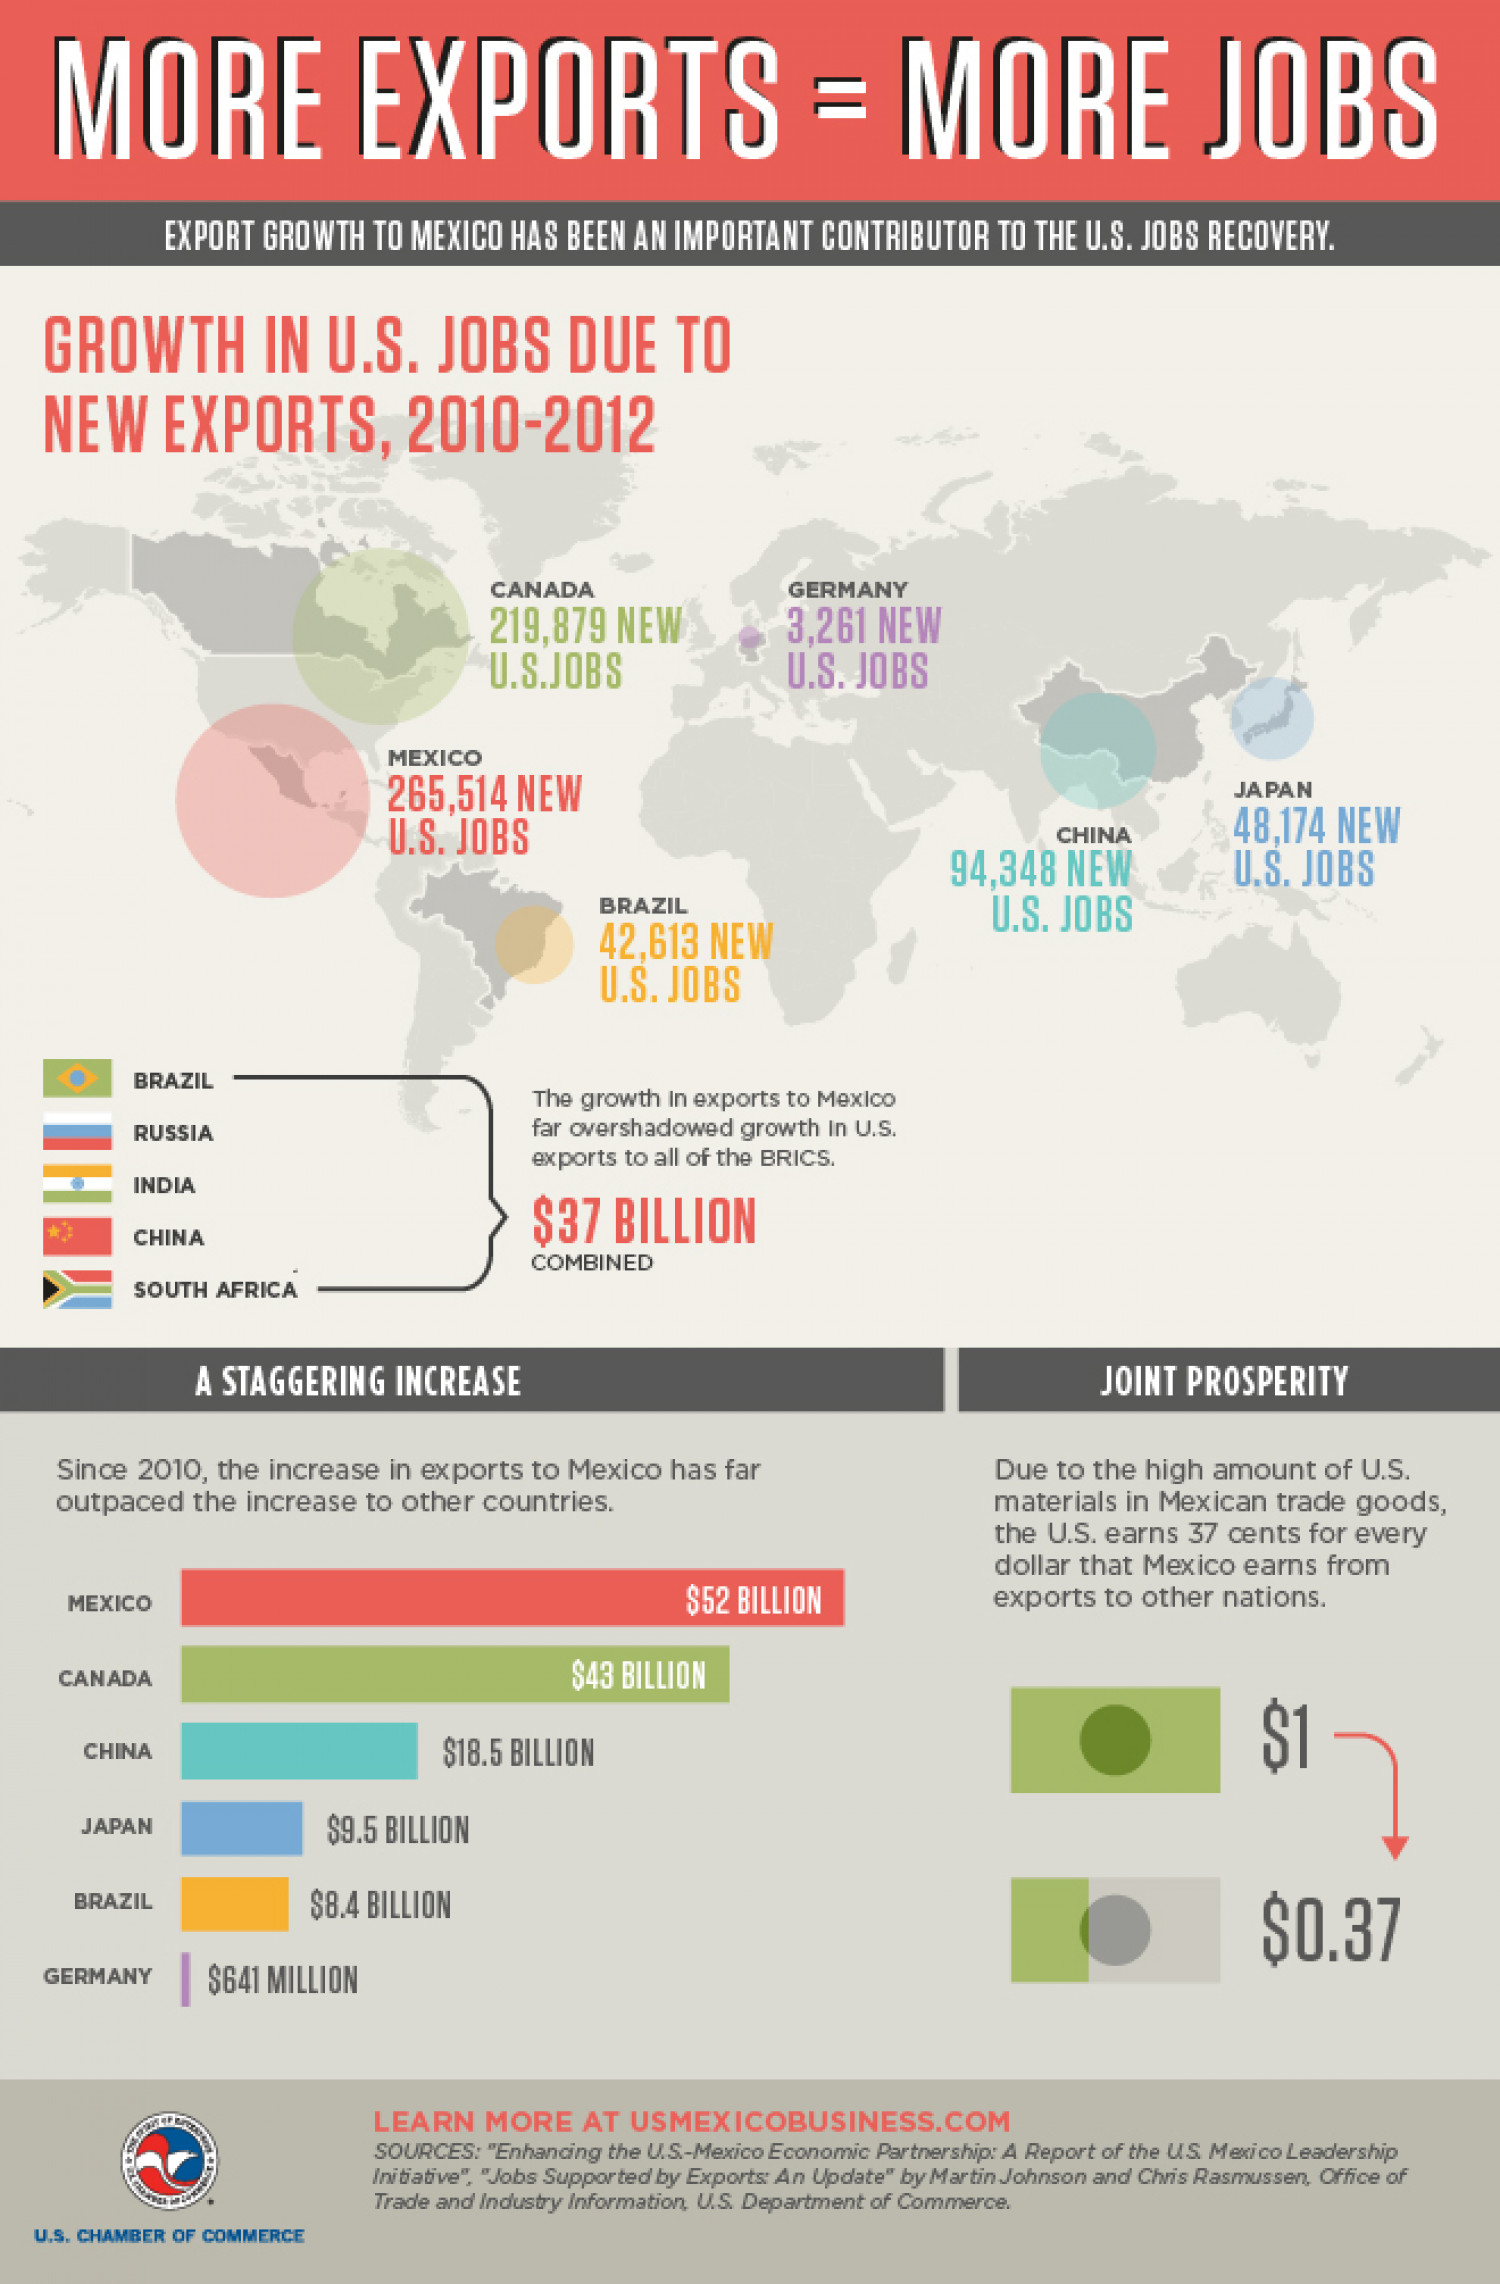 More Exports = More Jobs Infographic